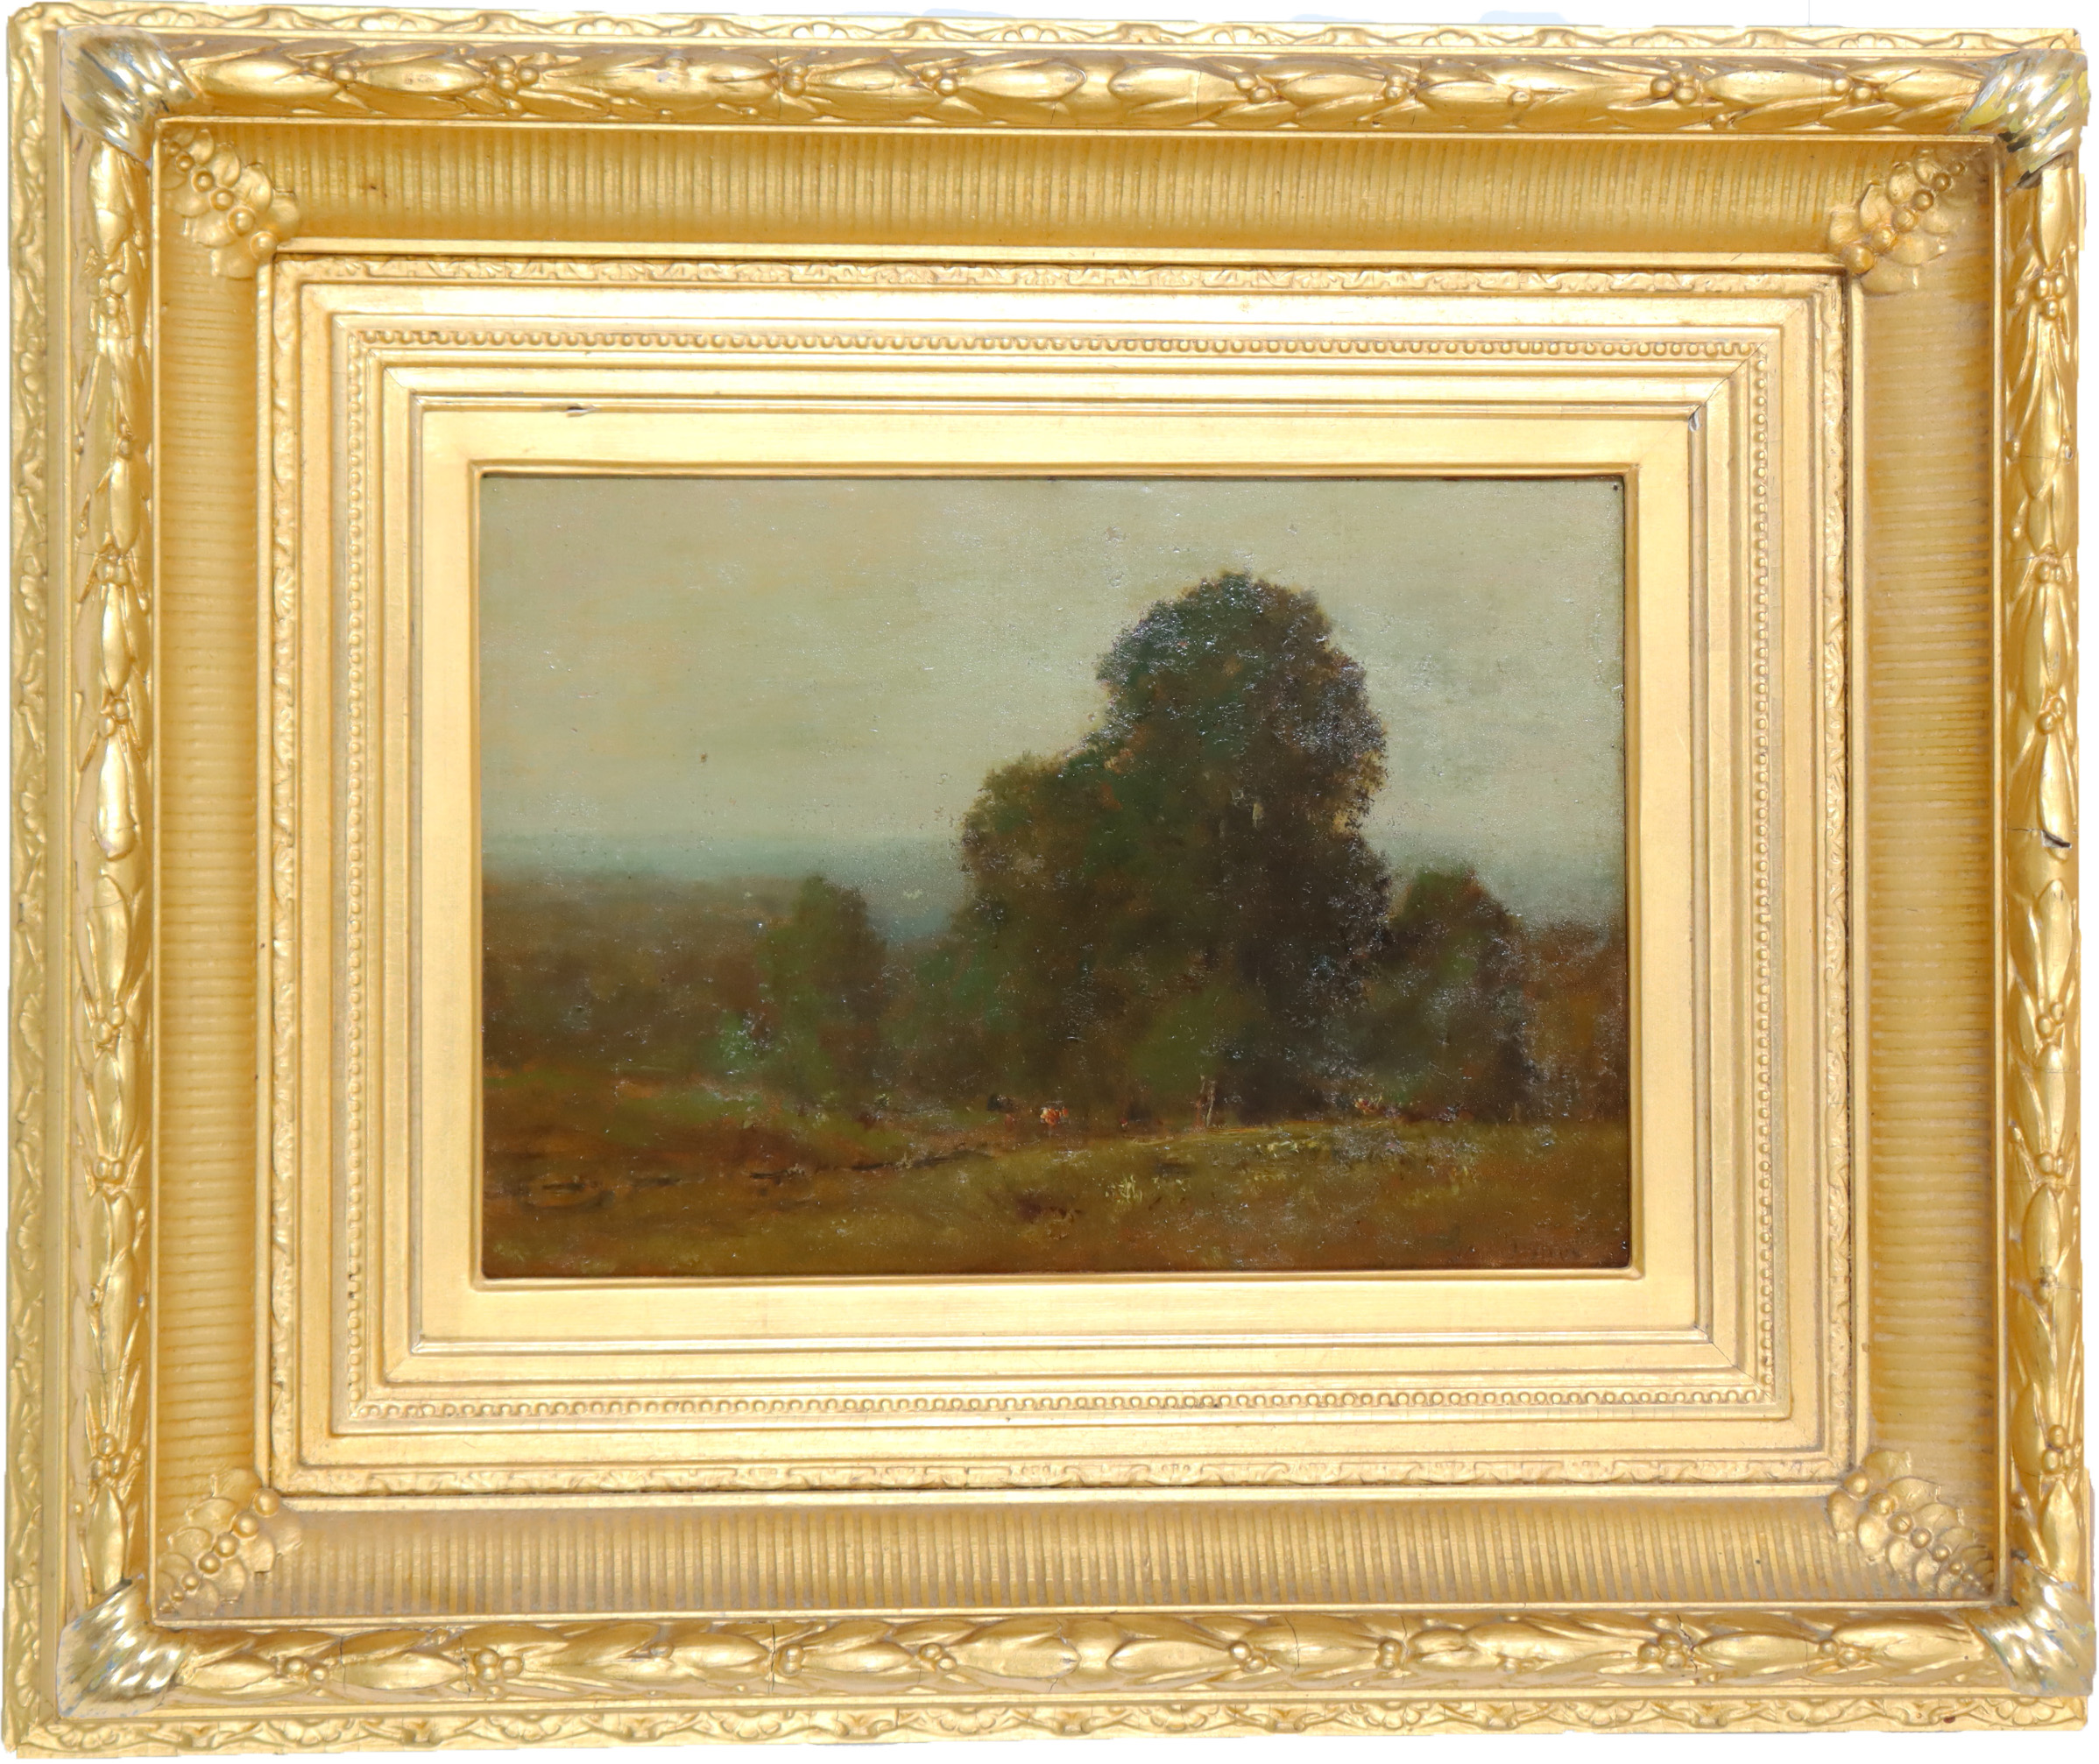 You are currently viewing George Inness Jr. (1854-1926) Oil on Canvas